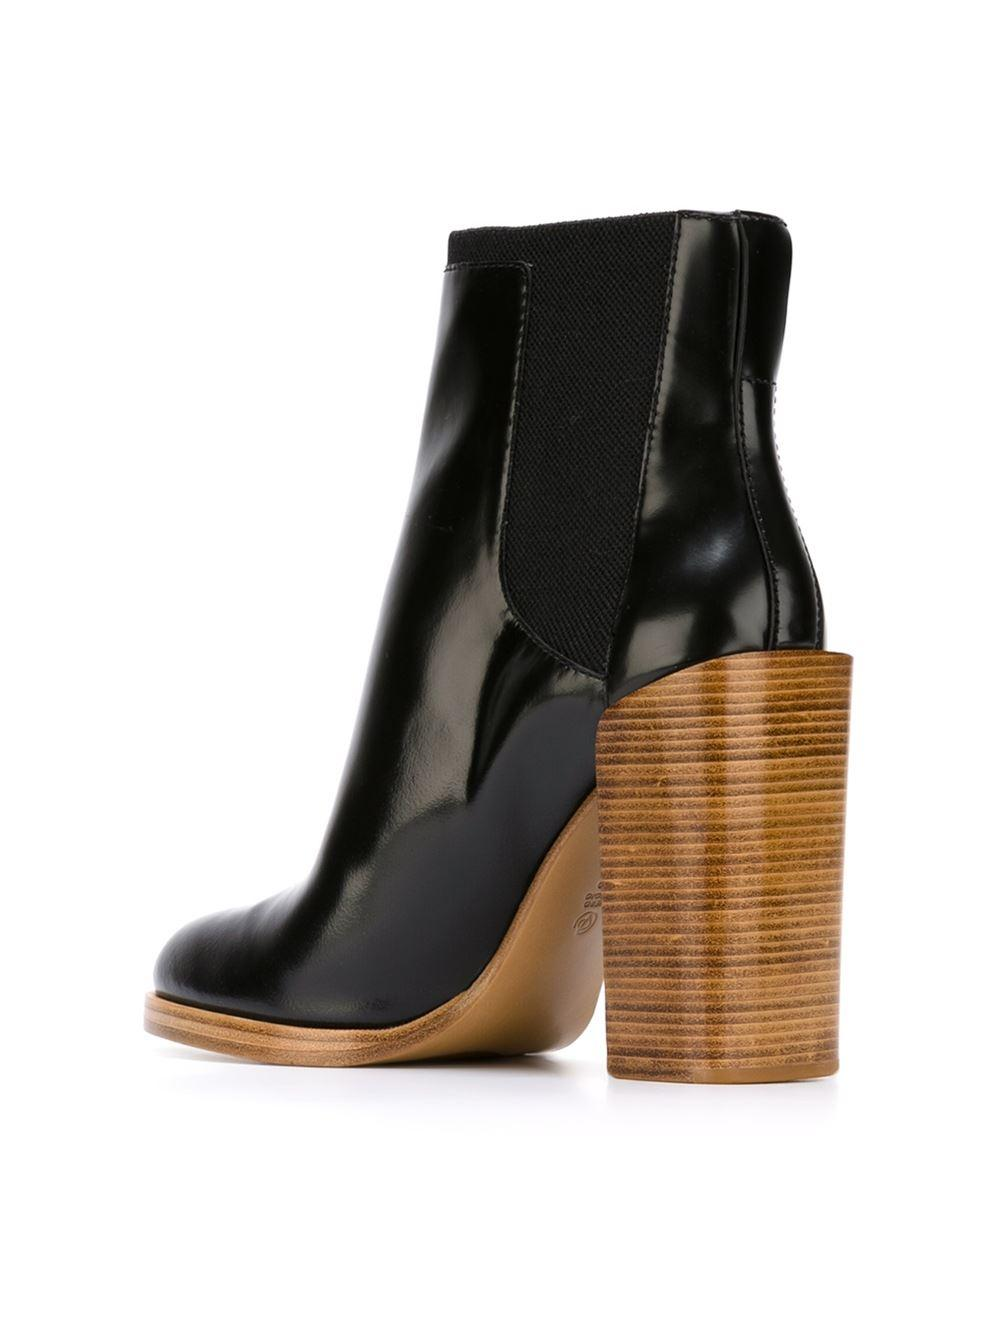 3.1 Phillip Lim Leather 'emerson' Chelsea Boots in Black